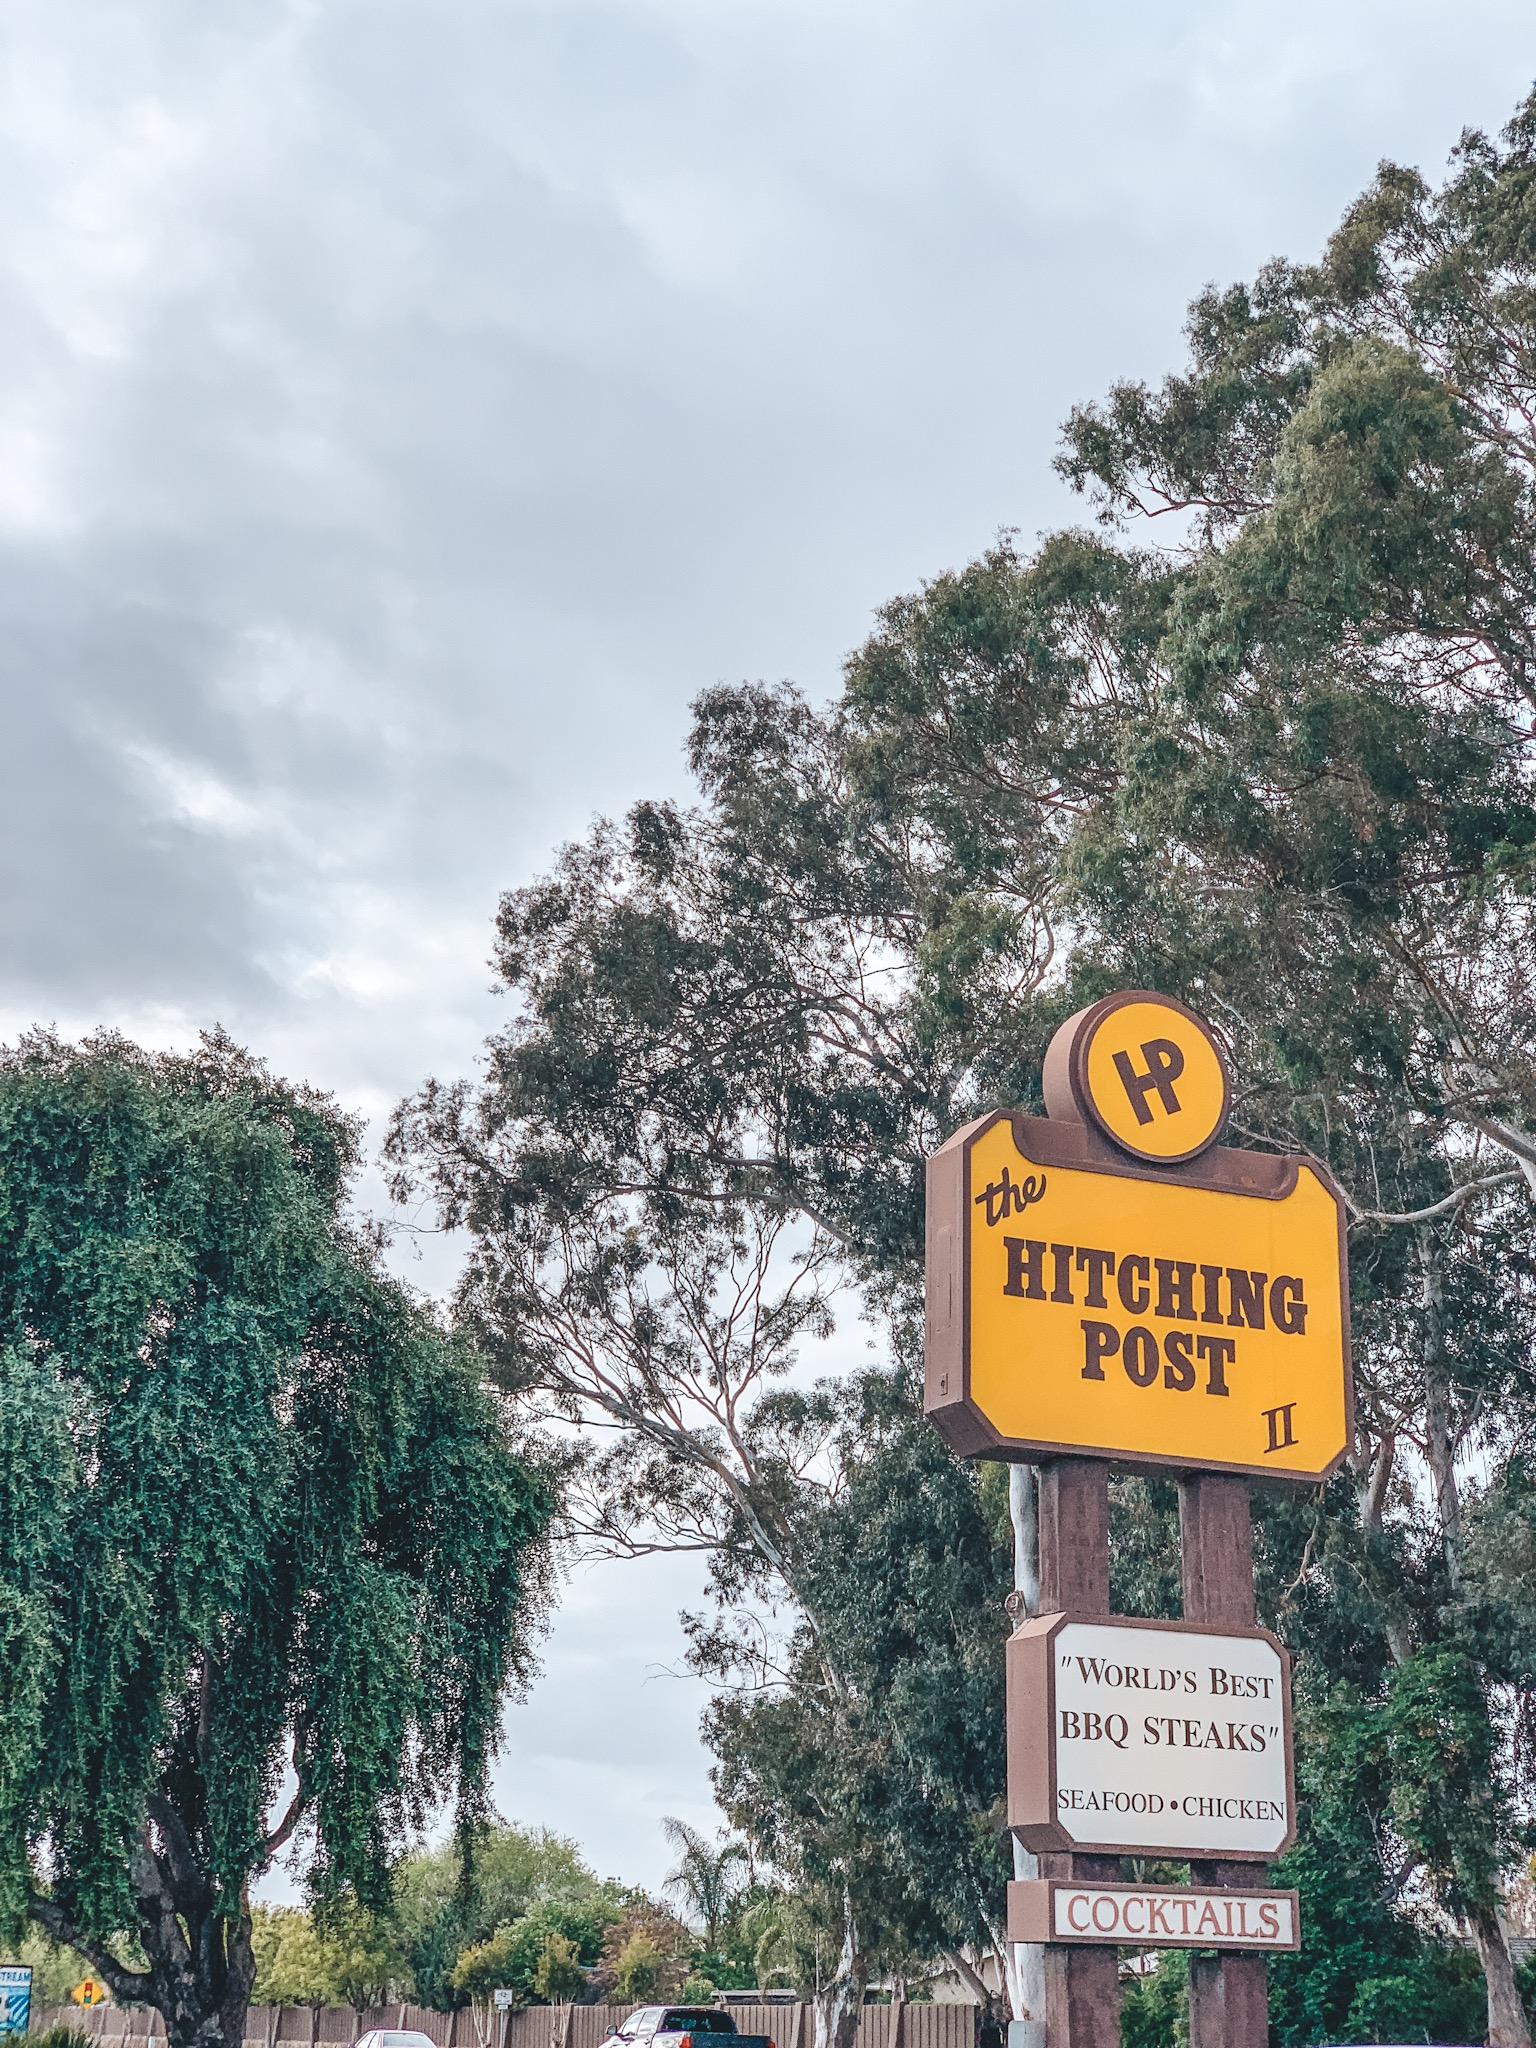 The Hitching Post II  | Santa Barbara Wine Country | Erika Beach